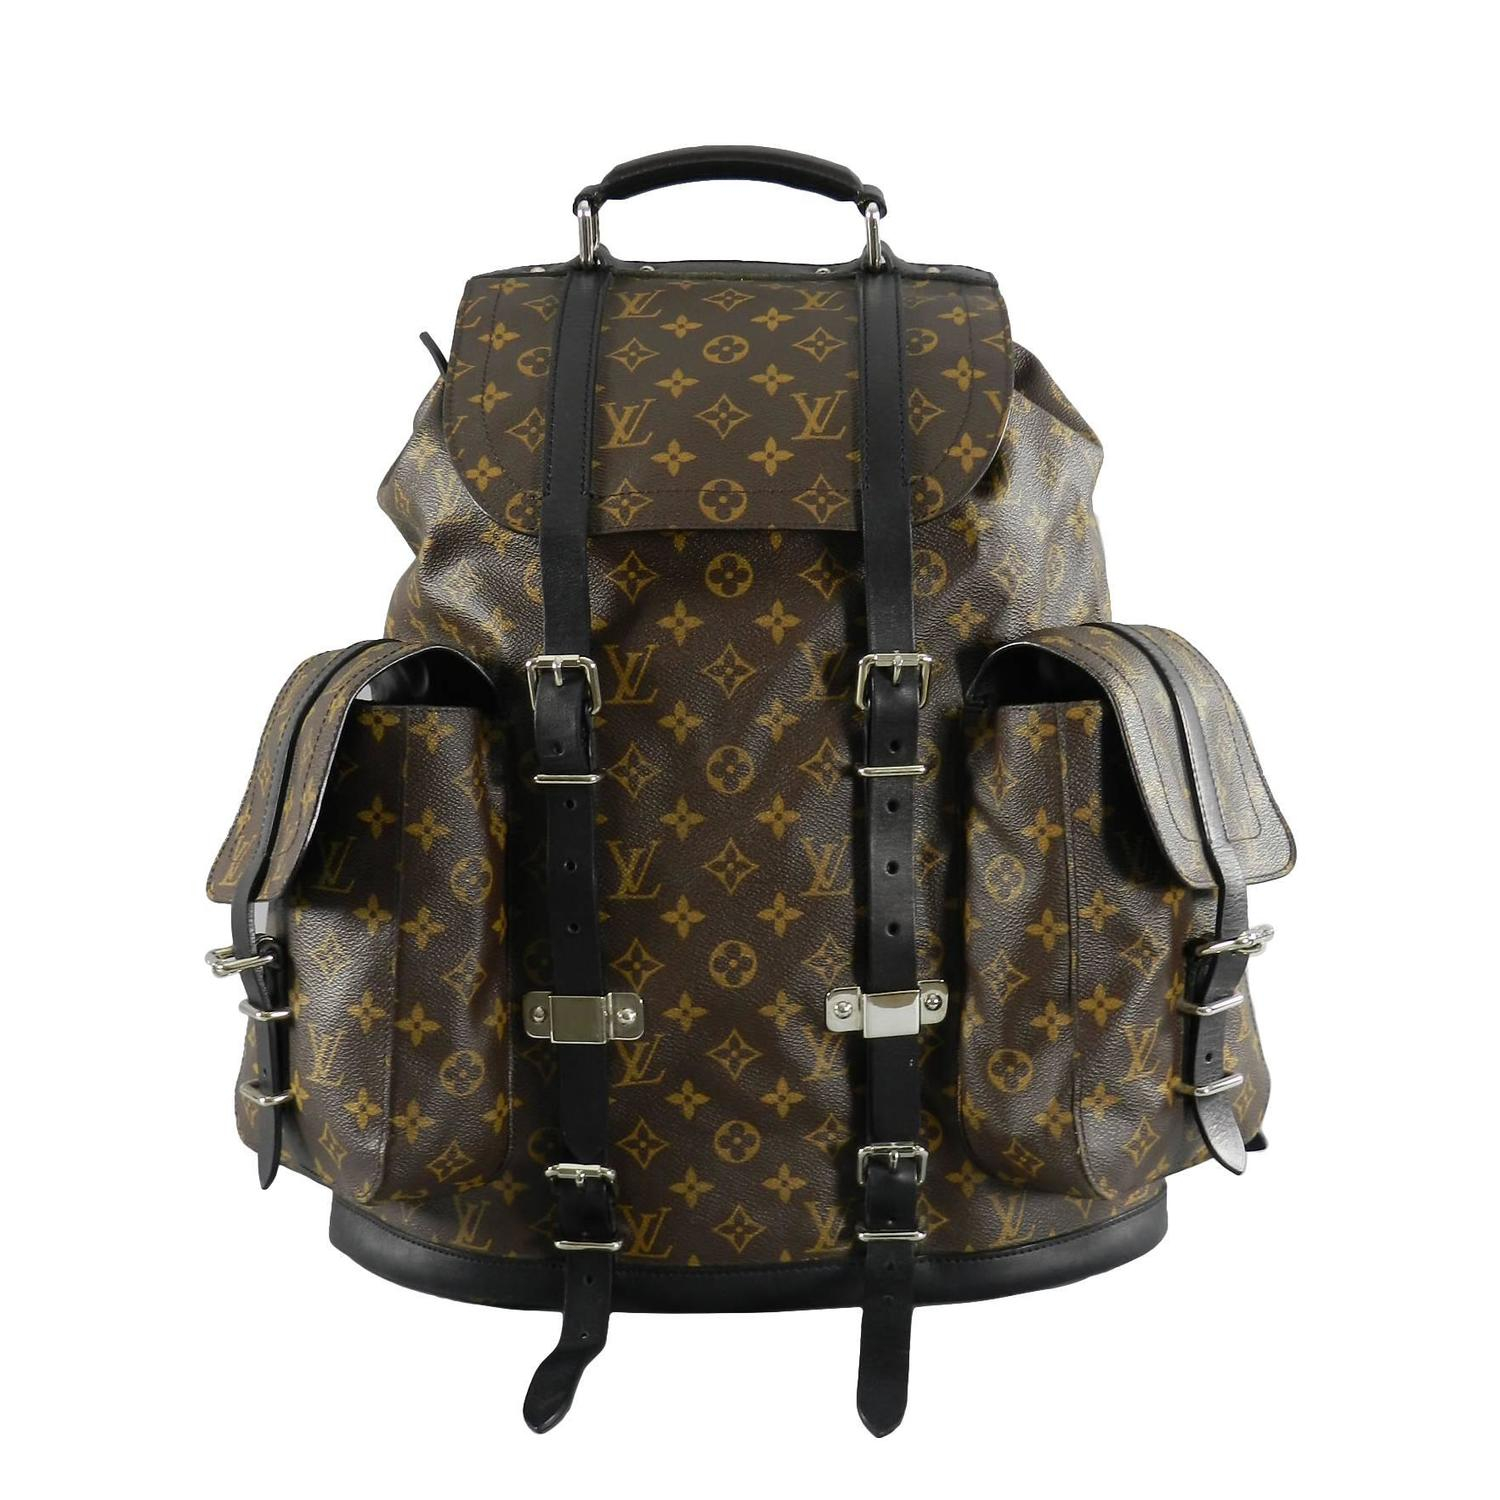 louis vuitton monogram christopher backpack at 1stdibs. Black Bedroom Furniture Sets. Home Design Ideas